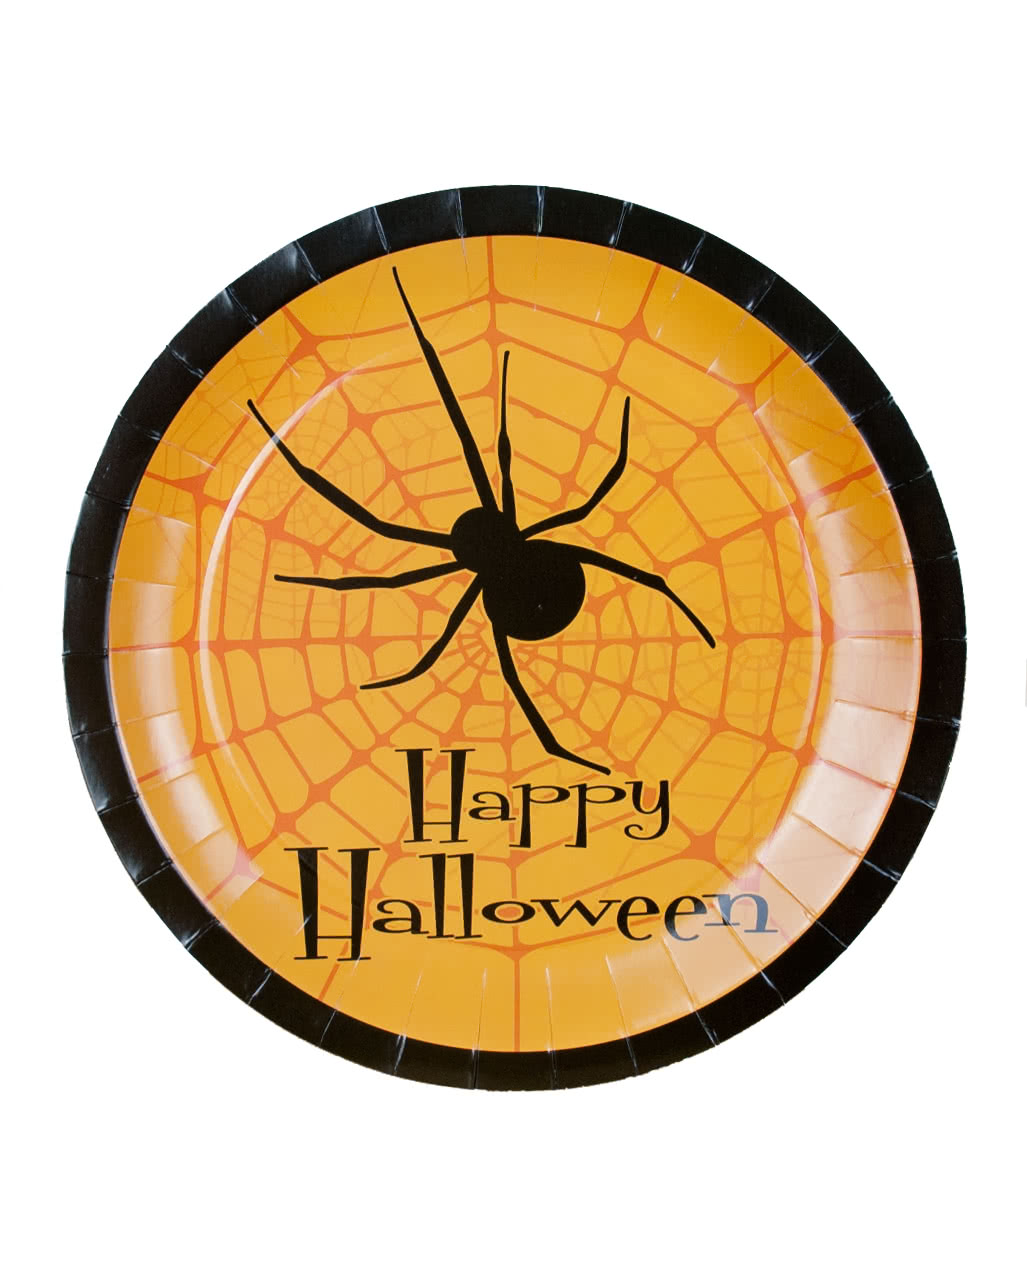 Happy Halloween paper plates with spider 8 St. as Halloween table decoration | horror-shop.com  sc 1 st  Horror-Shop.com & Happy Halloween paper plates with spider 8 St. as Halloween table ...